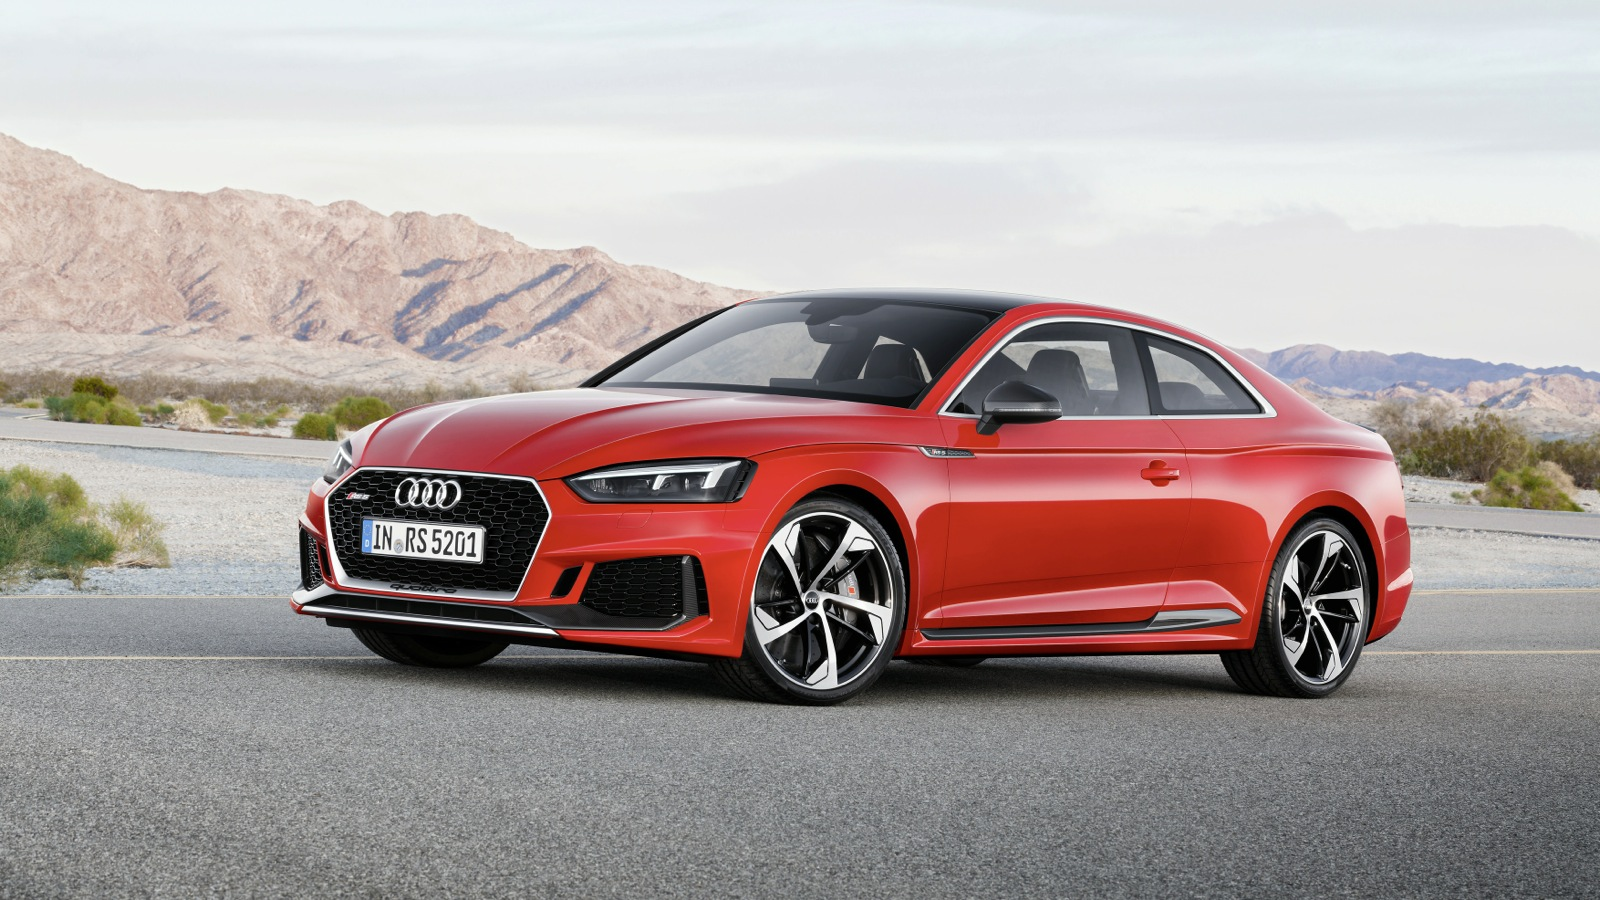 2017 audi rs5 coupe revealed photos 1 of 39. Black Bedroom Furniture Sets. Home Design Ideas